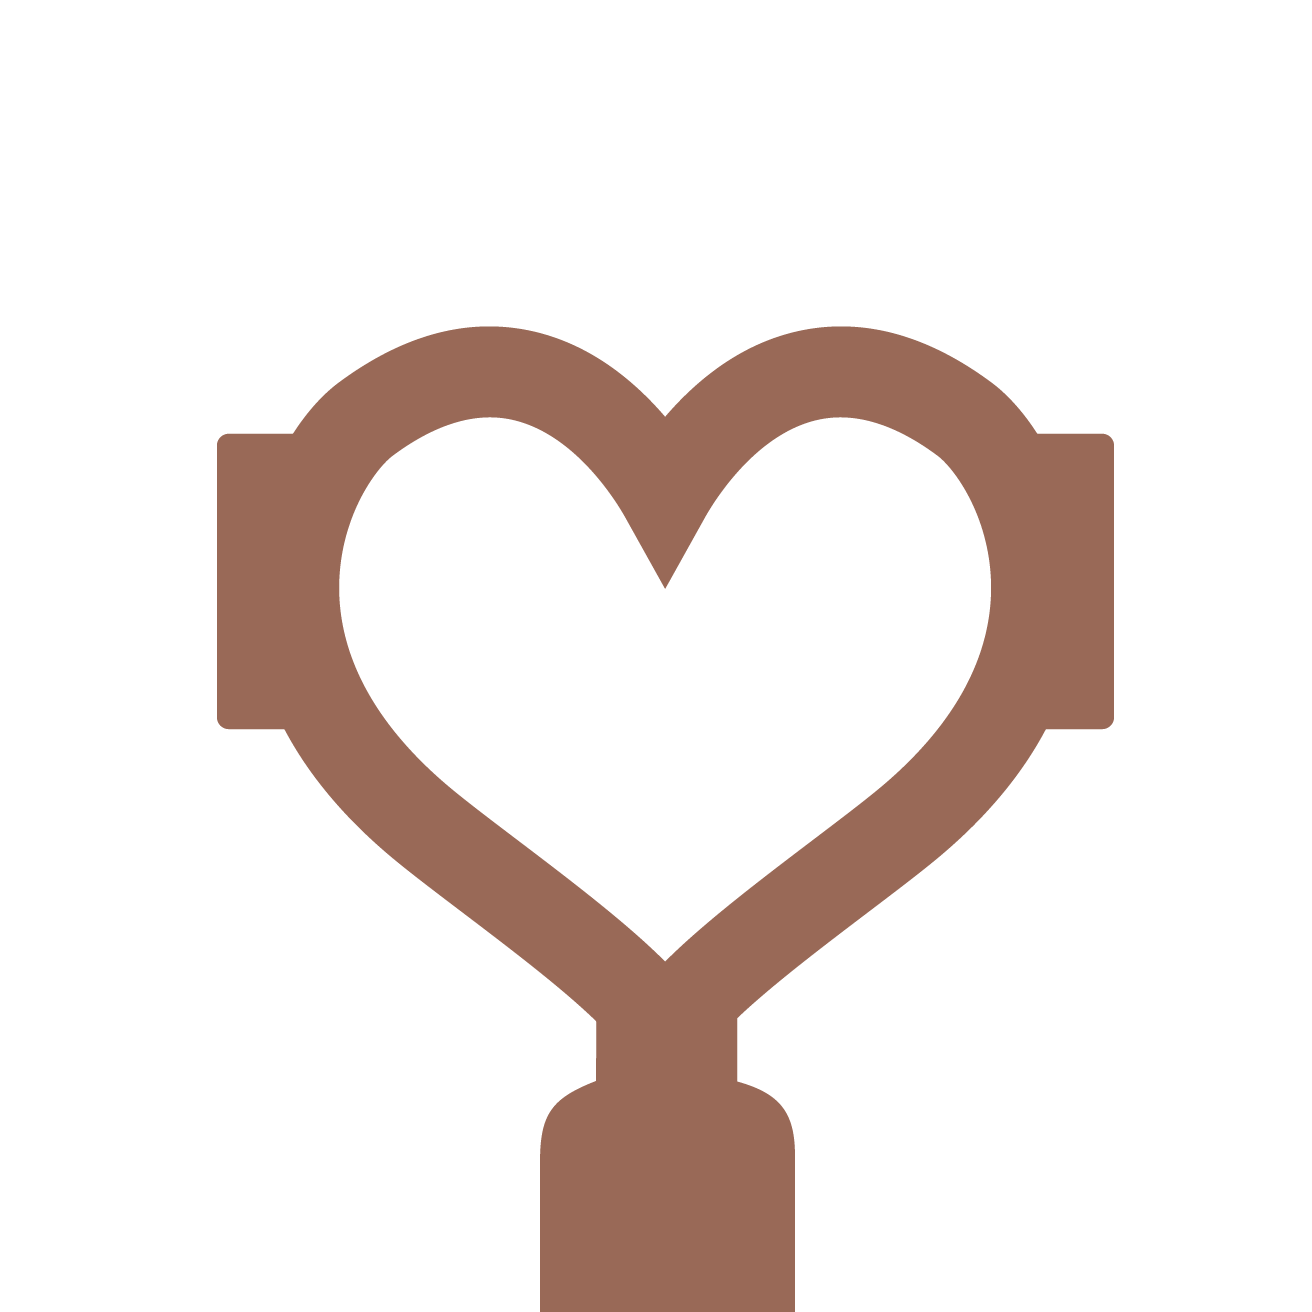 Moccamaster KBG Select - Black, with FREE 250g bag of Coffee